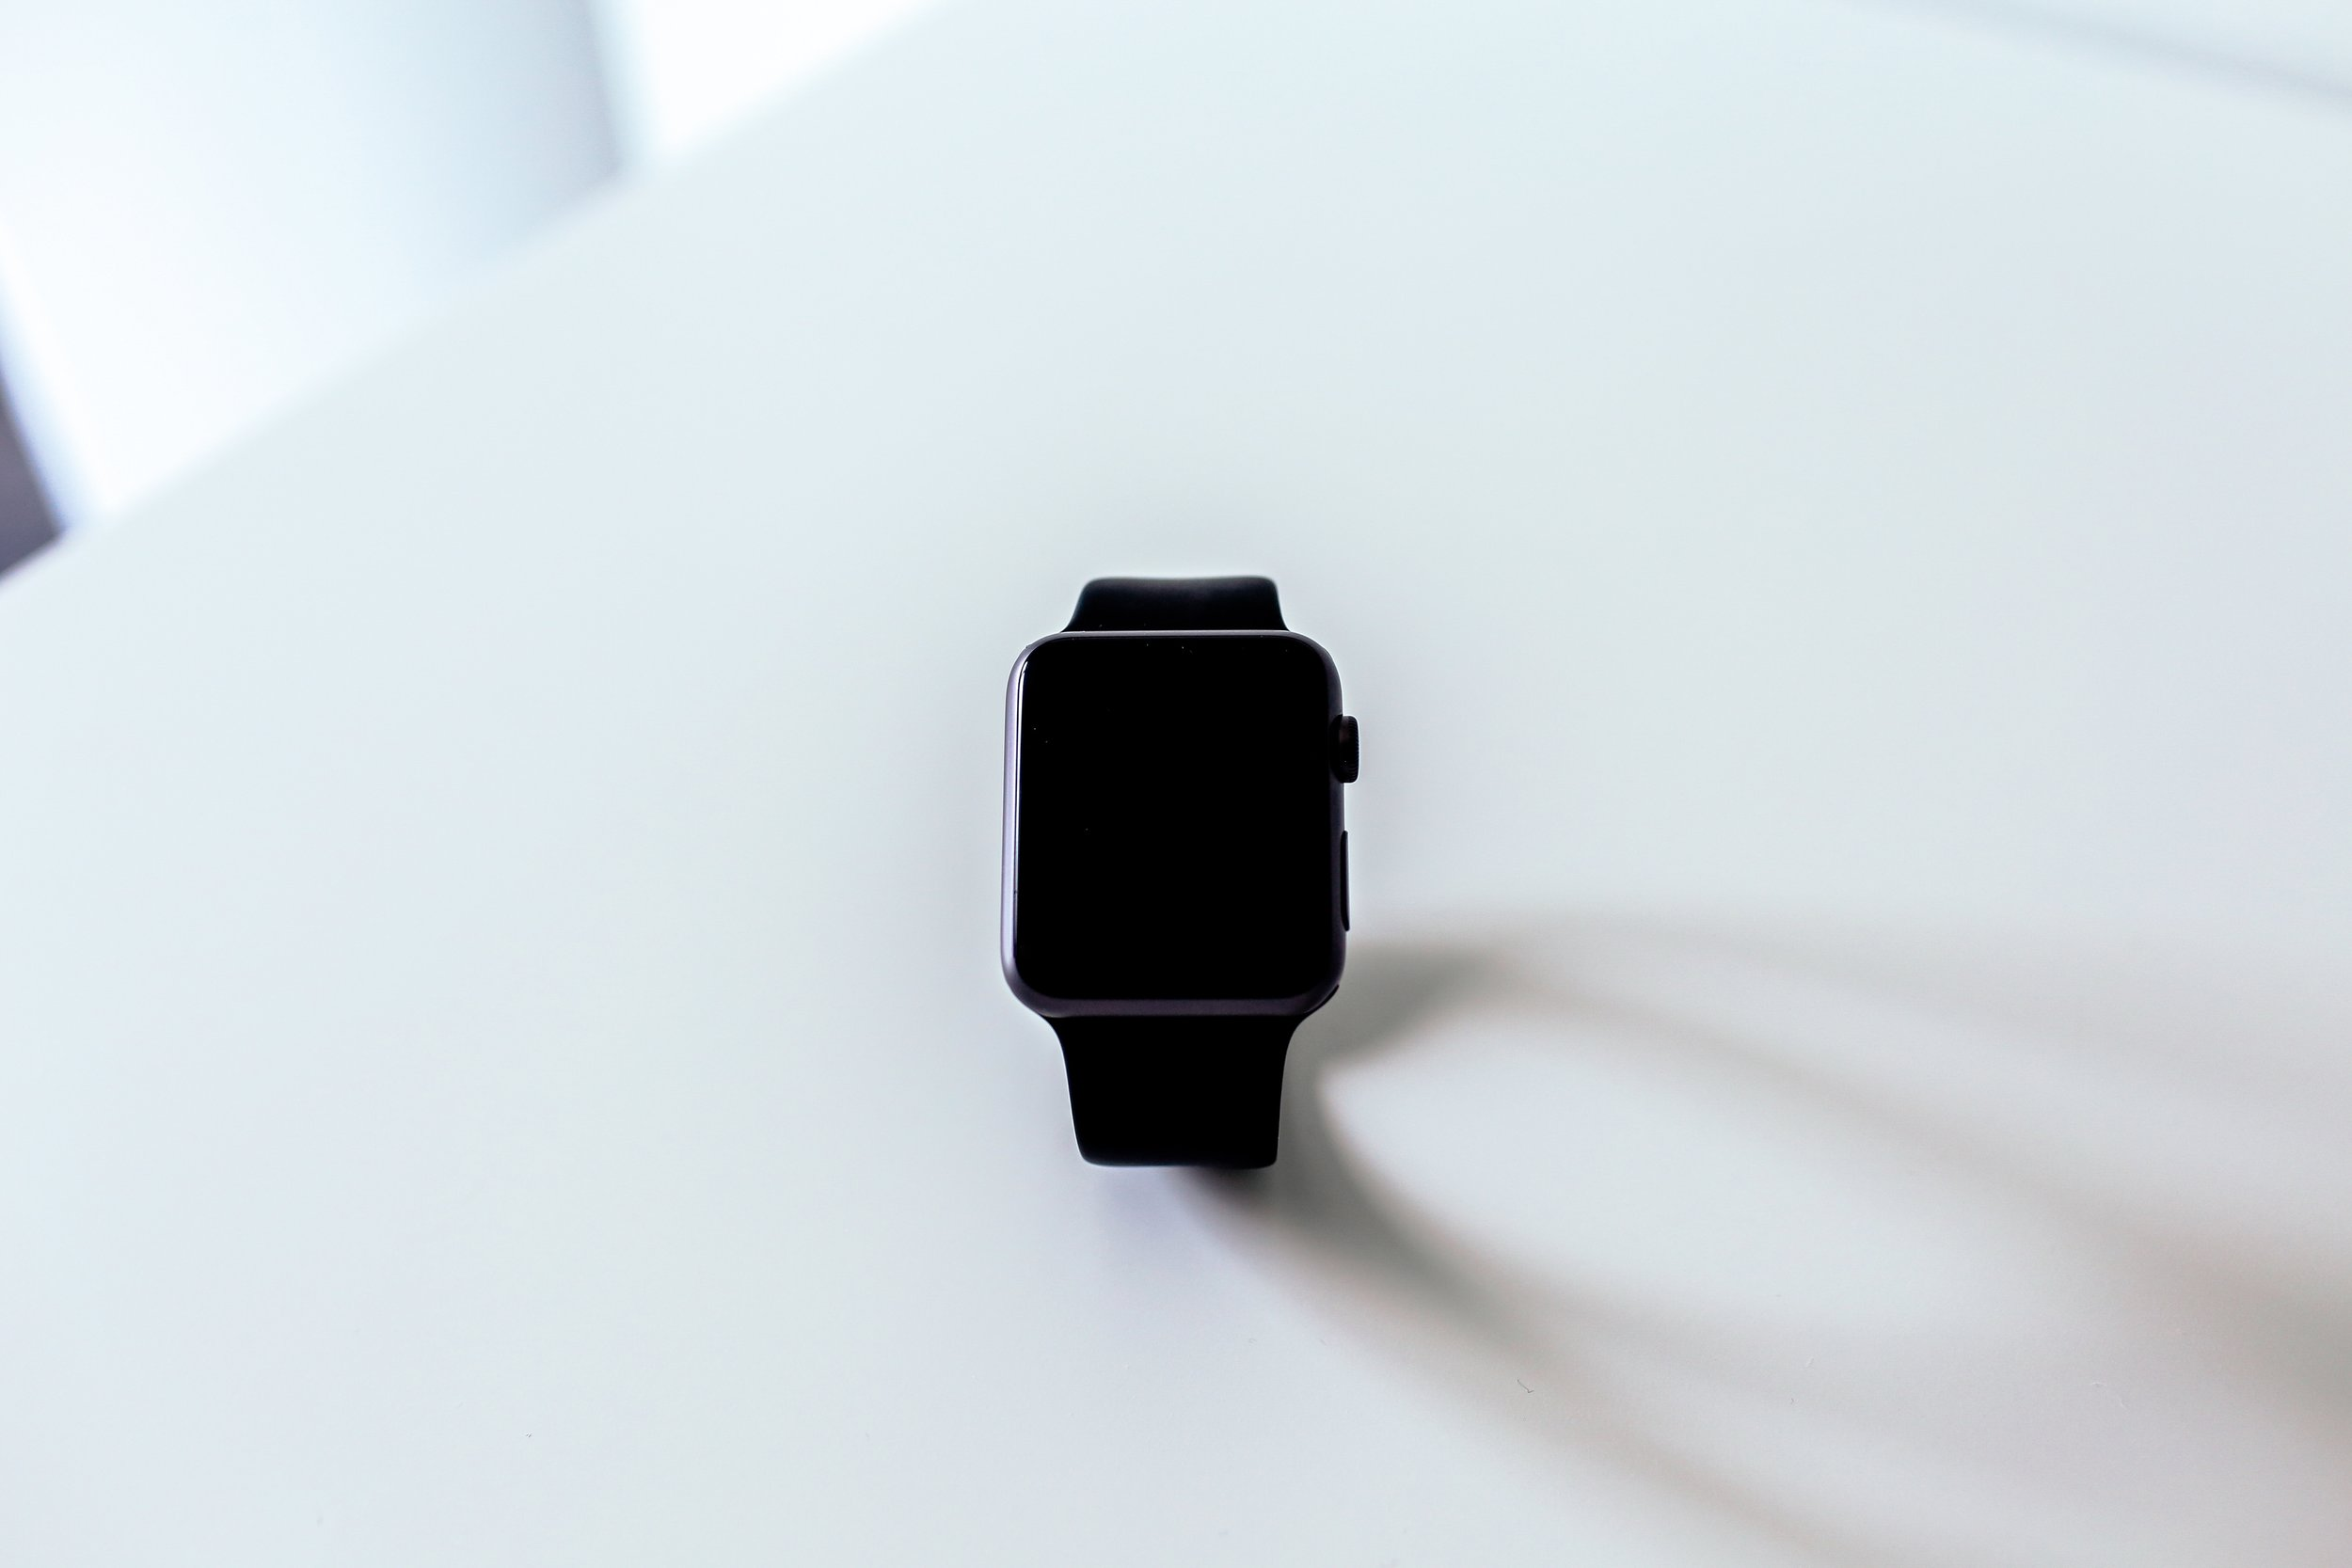 high-tech cheating? - A Major League Baseball team is under investigation for possibly using an Apple Watch to cheat...